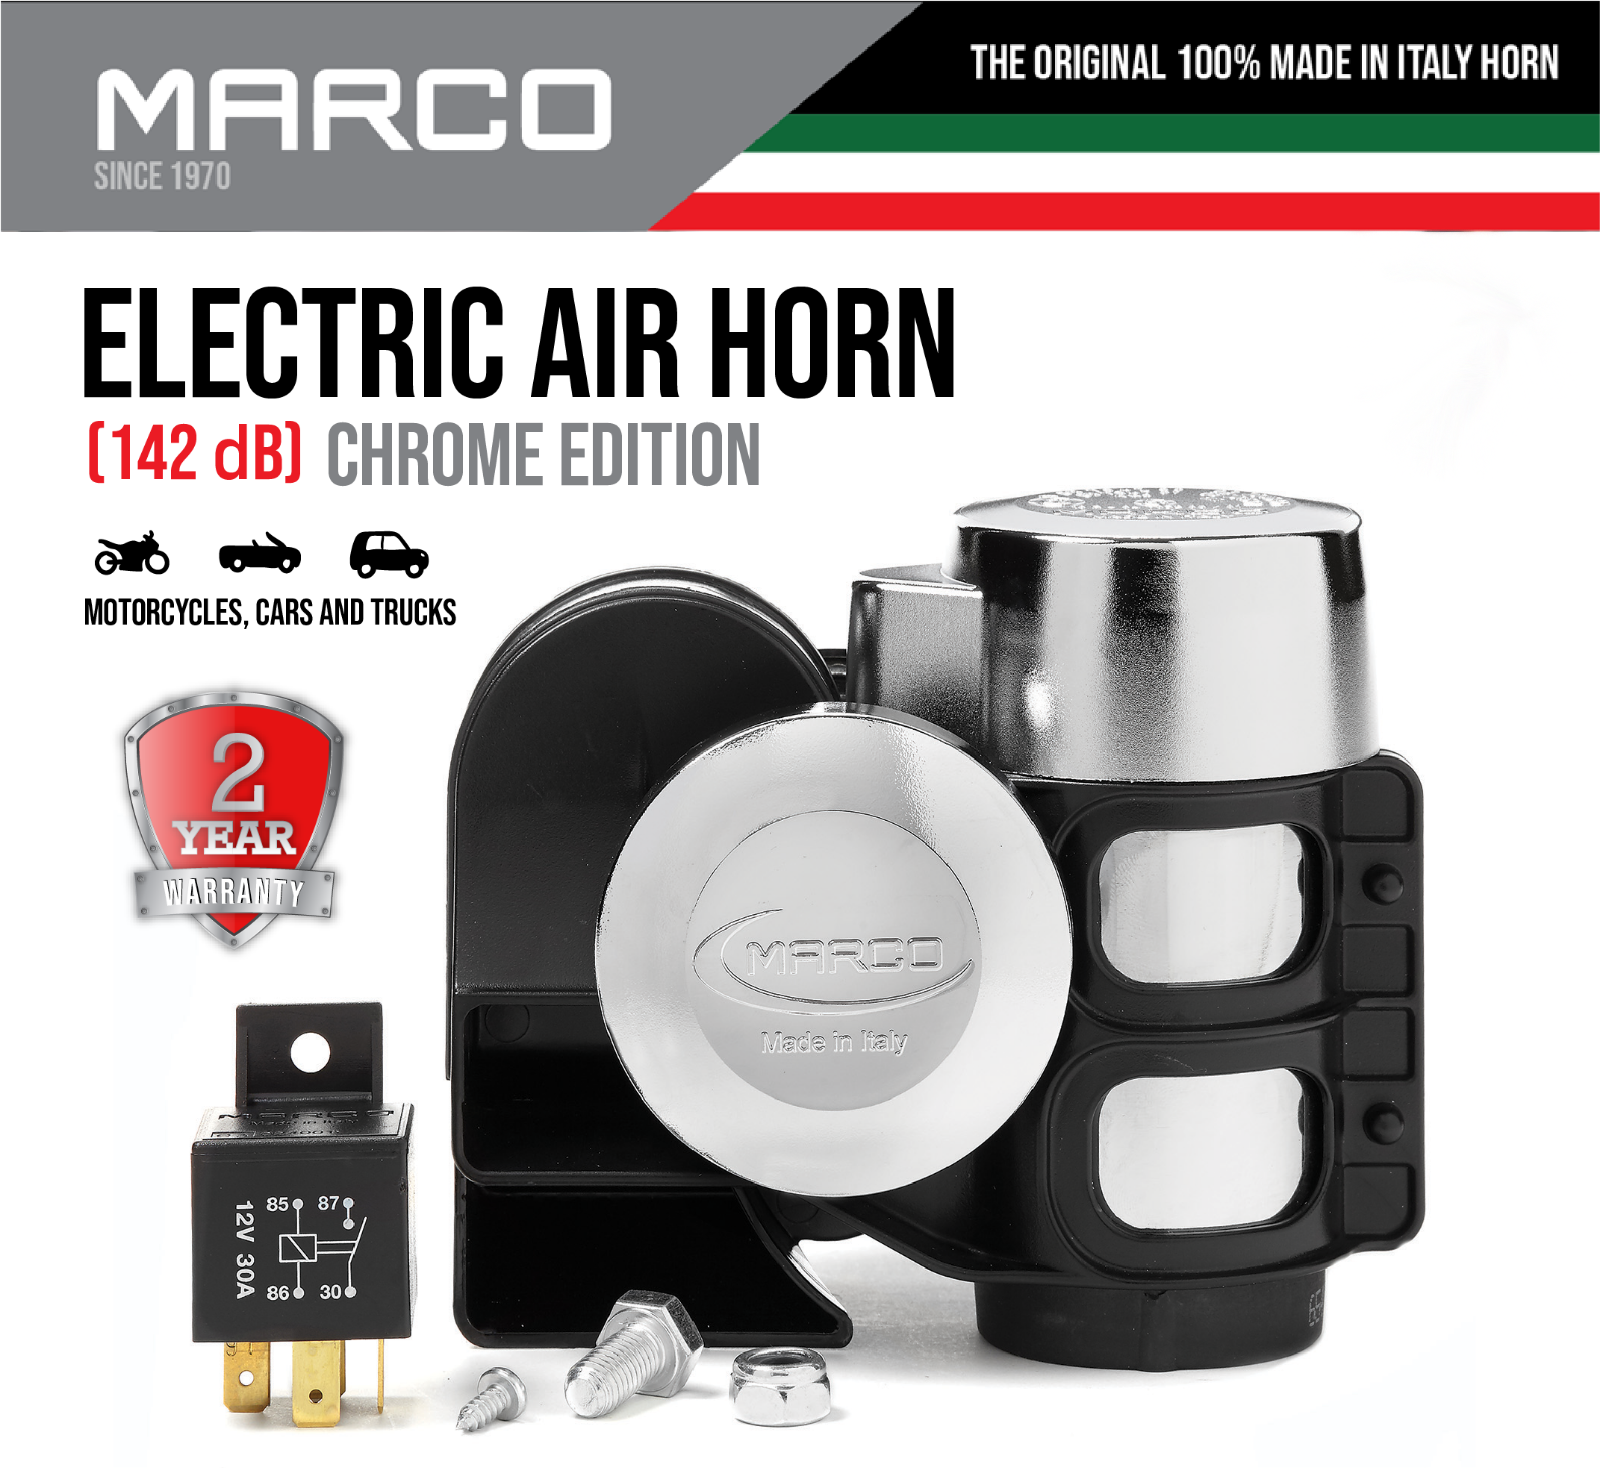 Marco Super Loud Hurricane Compact Air Horn for All 12v Vehicles Motorcycles Car